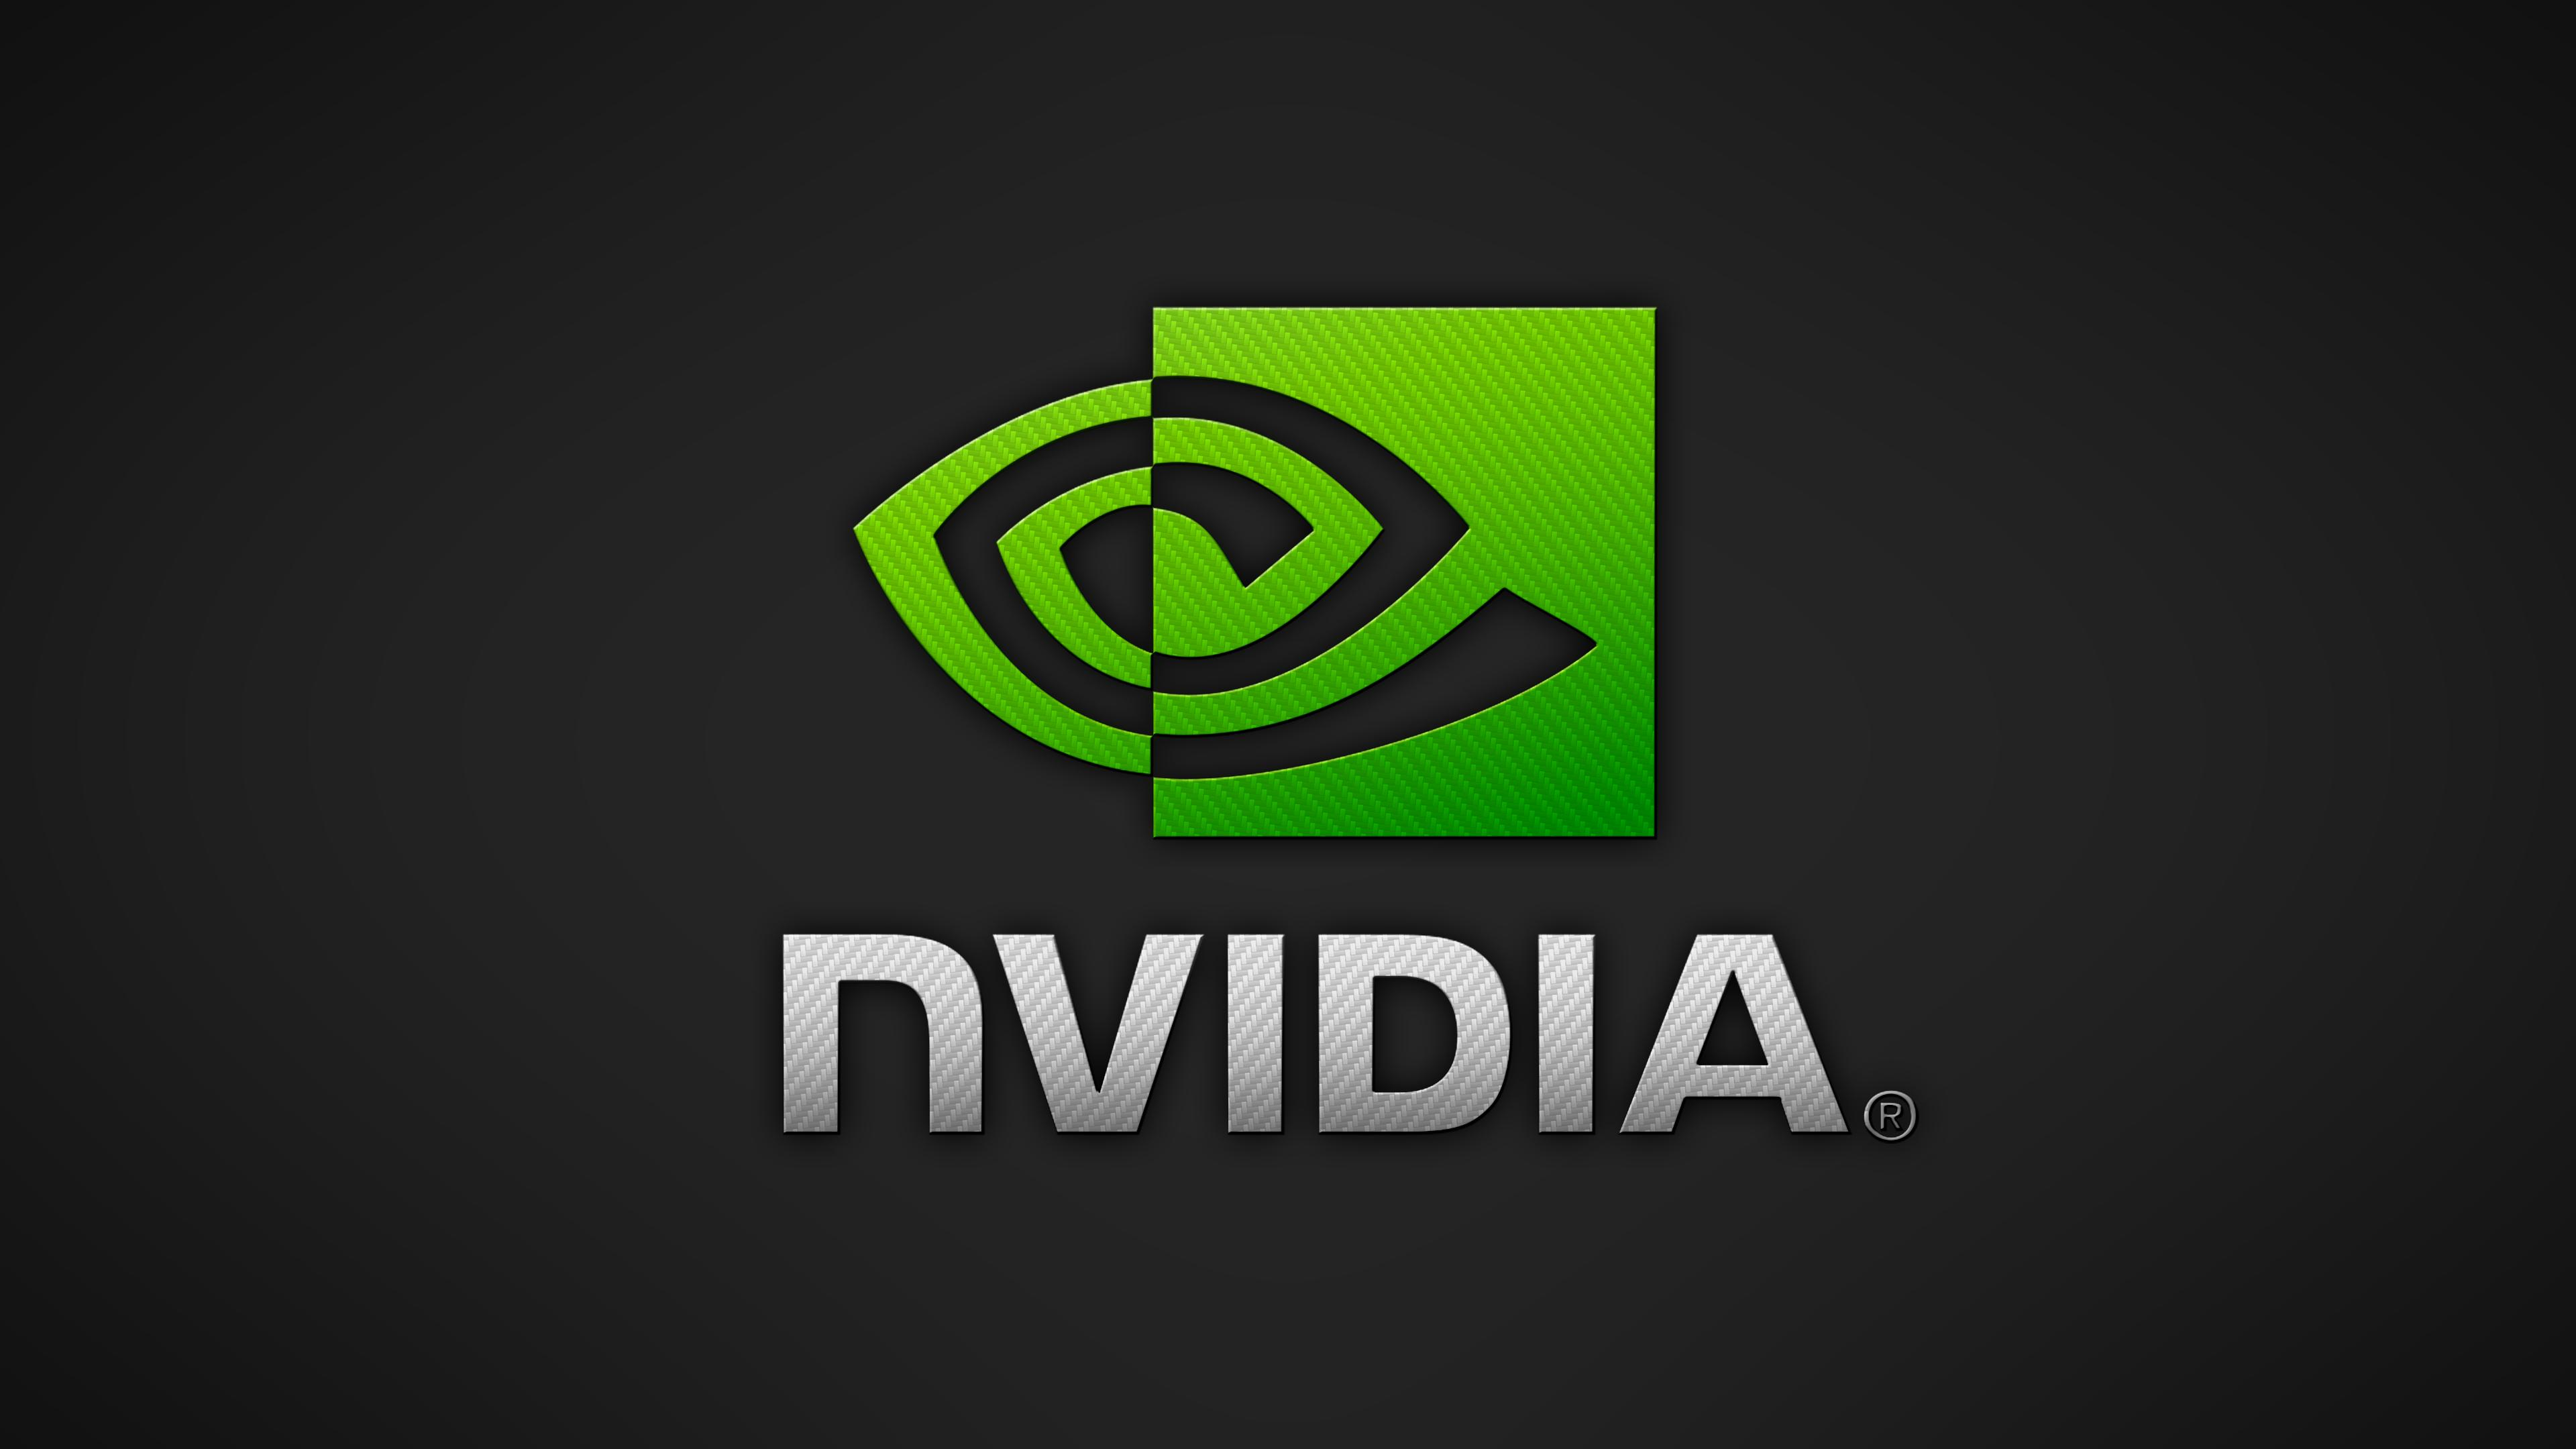 nvidia wallpapers pictures images